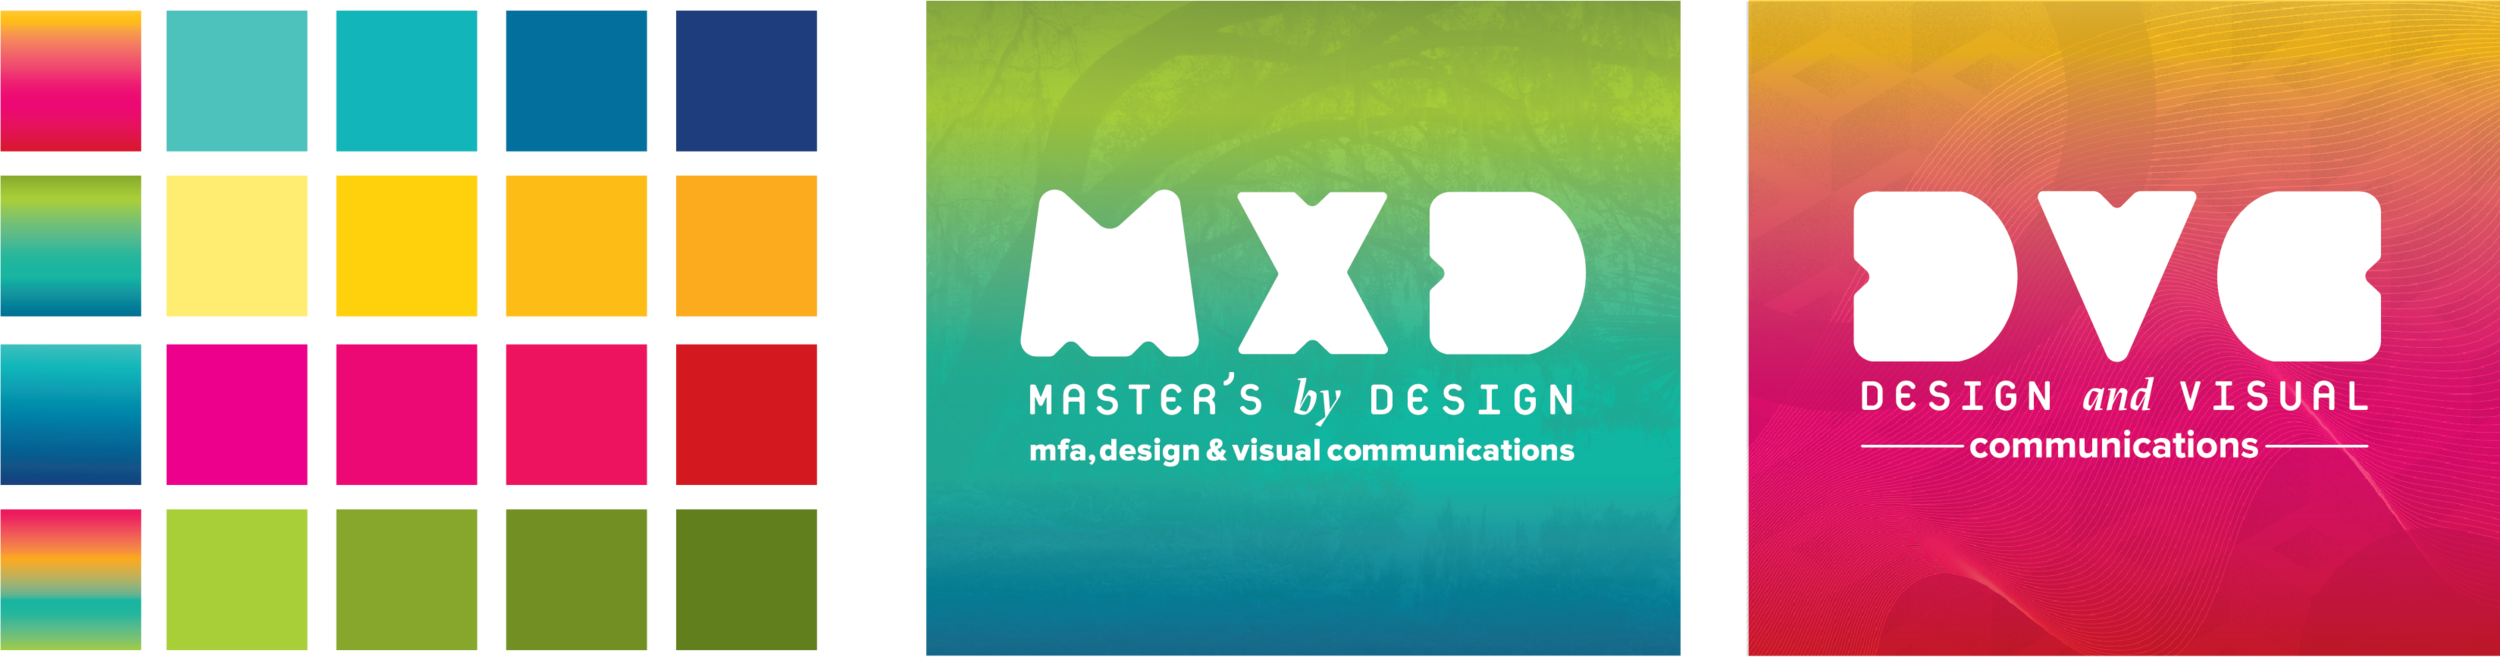 MXD designed by Jarred Elrod. DVC designed by Yankel Amarante.